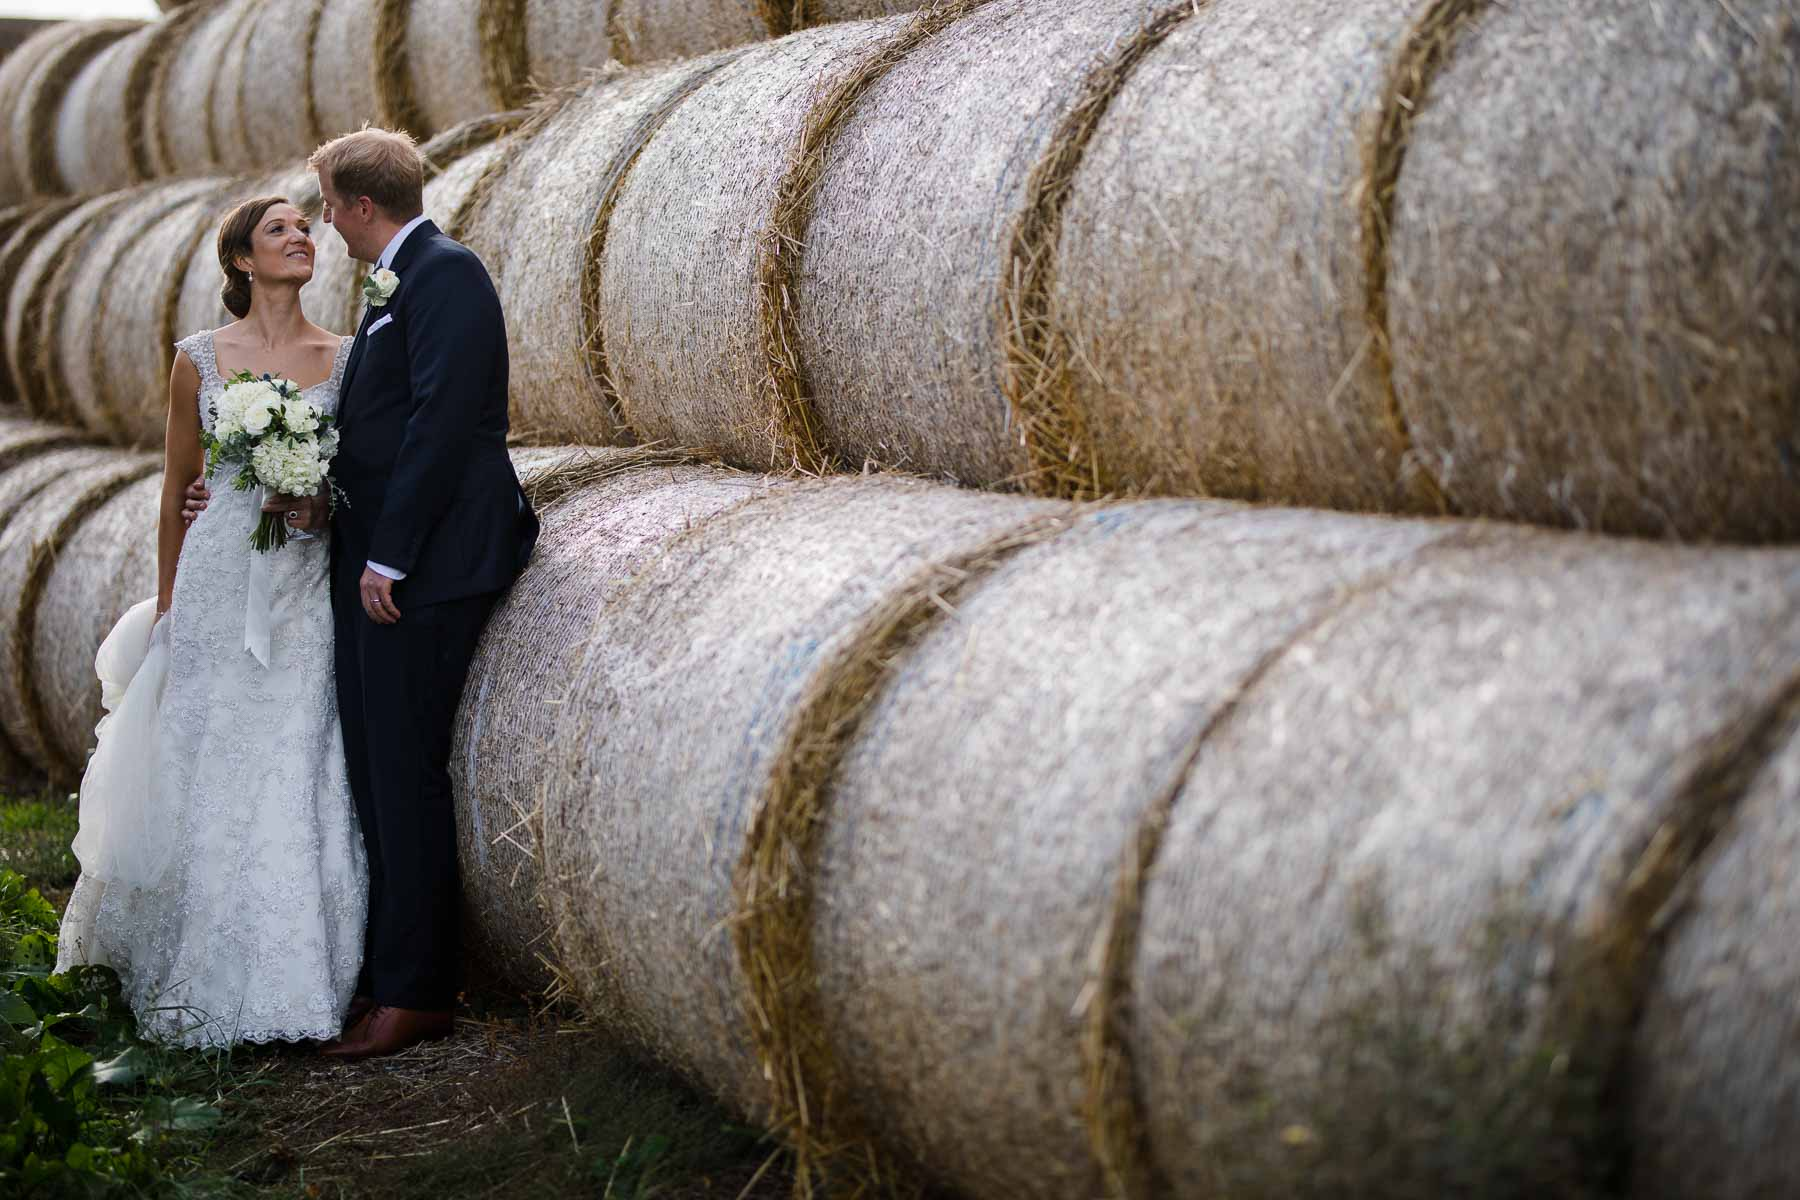 Hay bales for wedding photography props